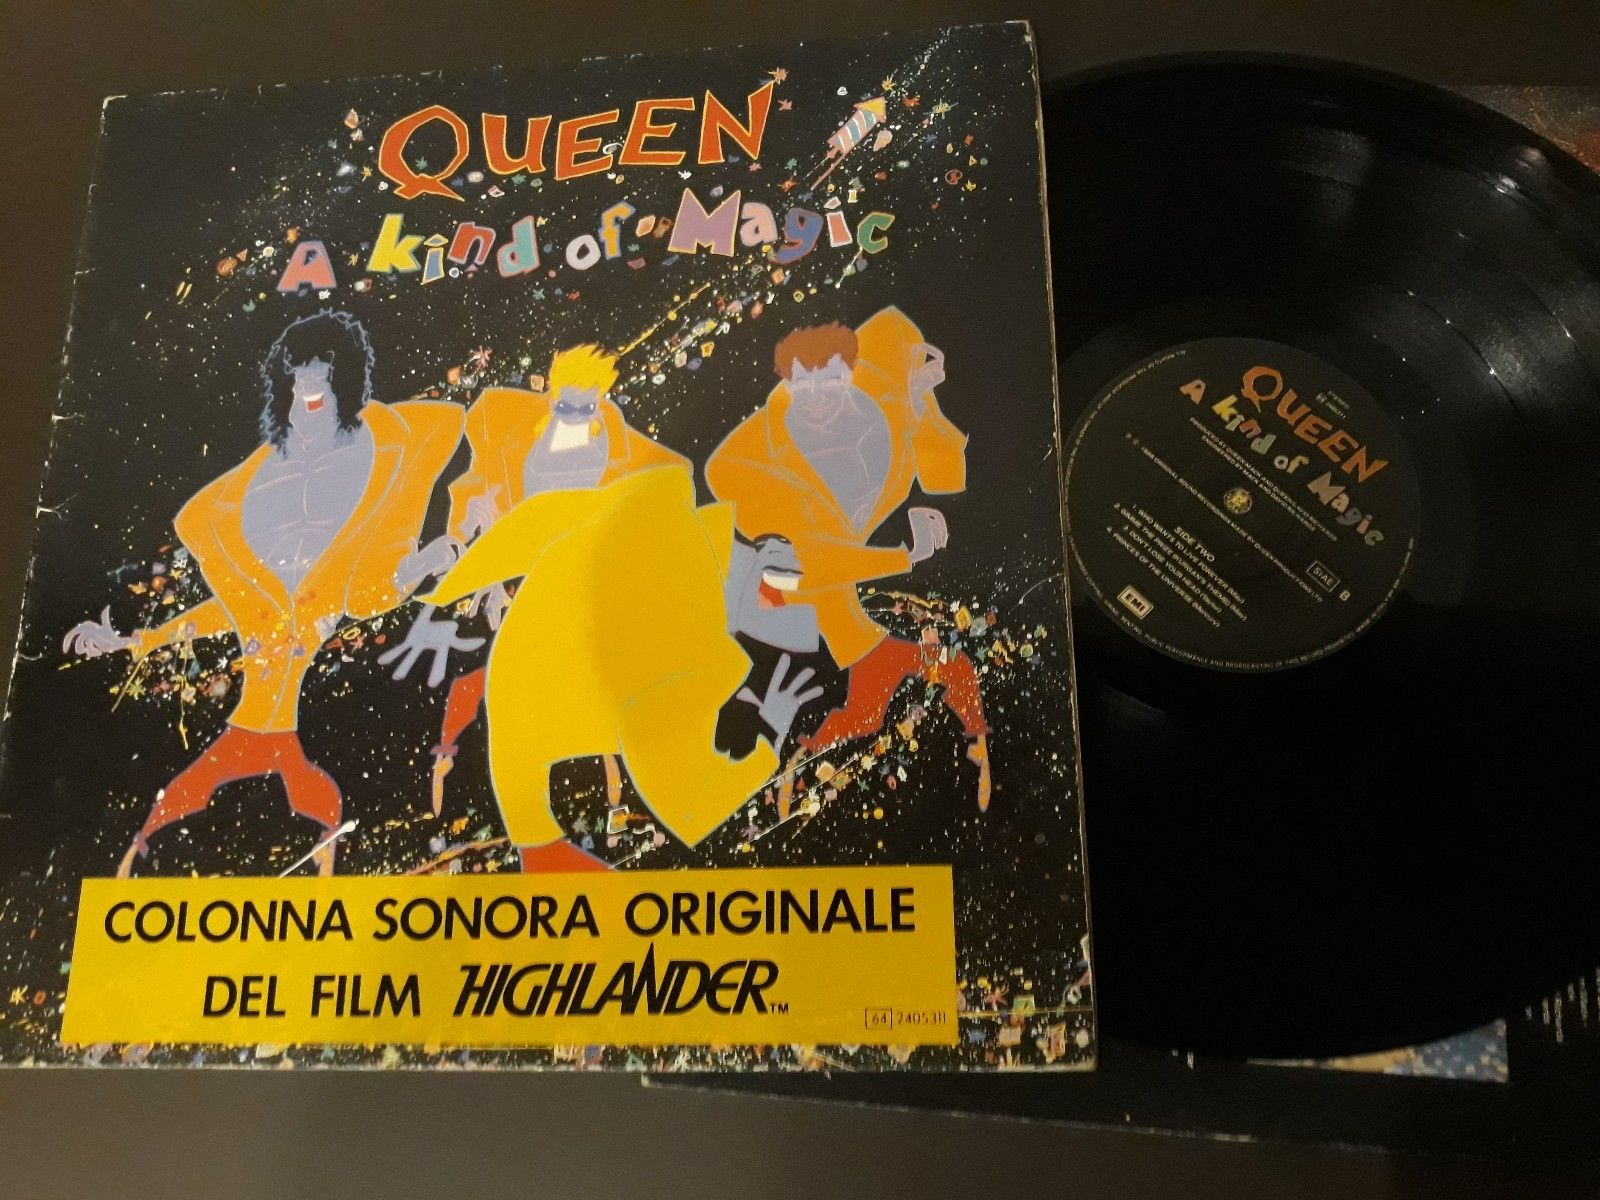 QUEEN a kind of magic  edition with promo film on front cover Italy LP